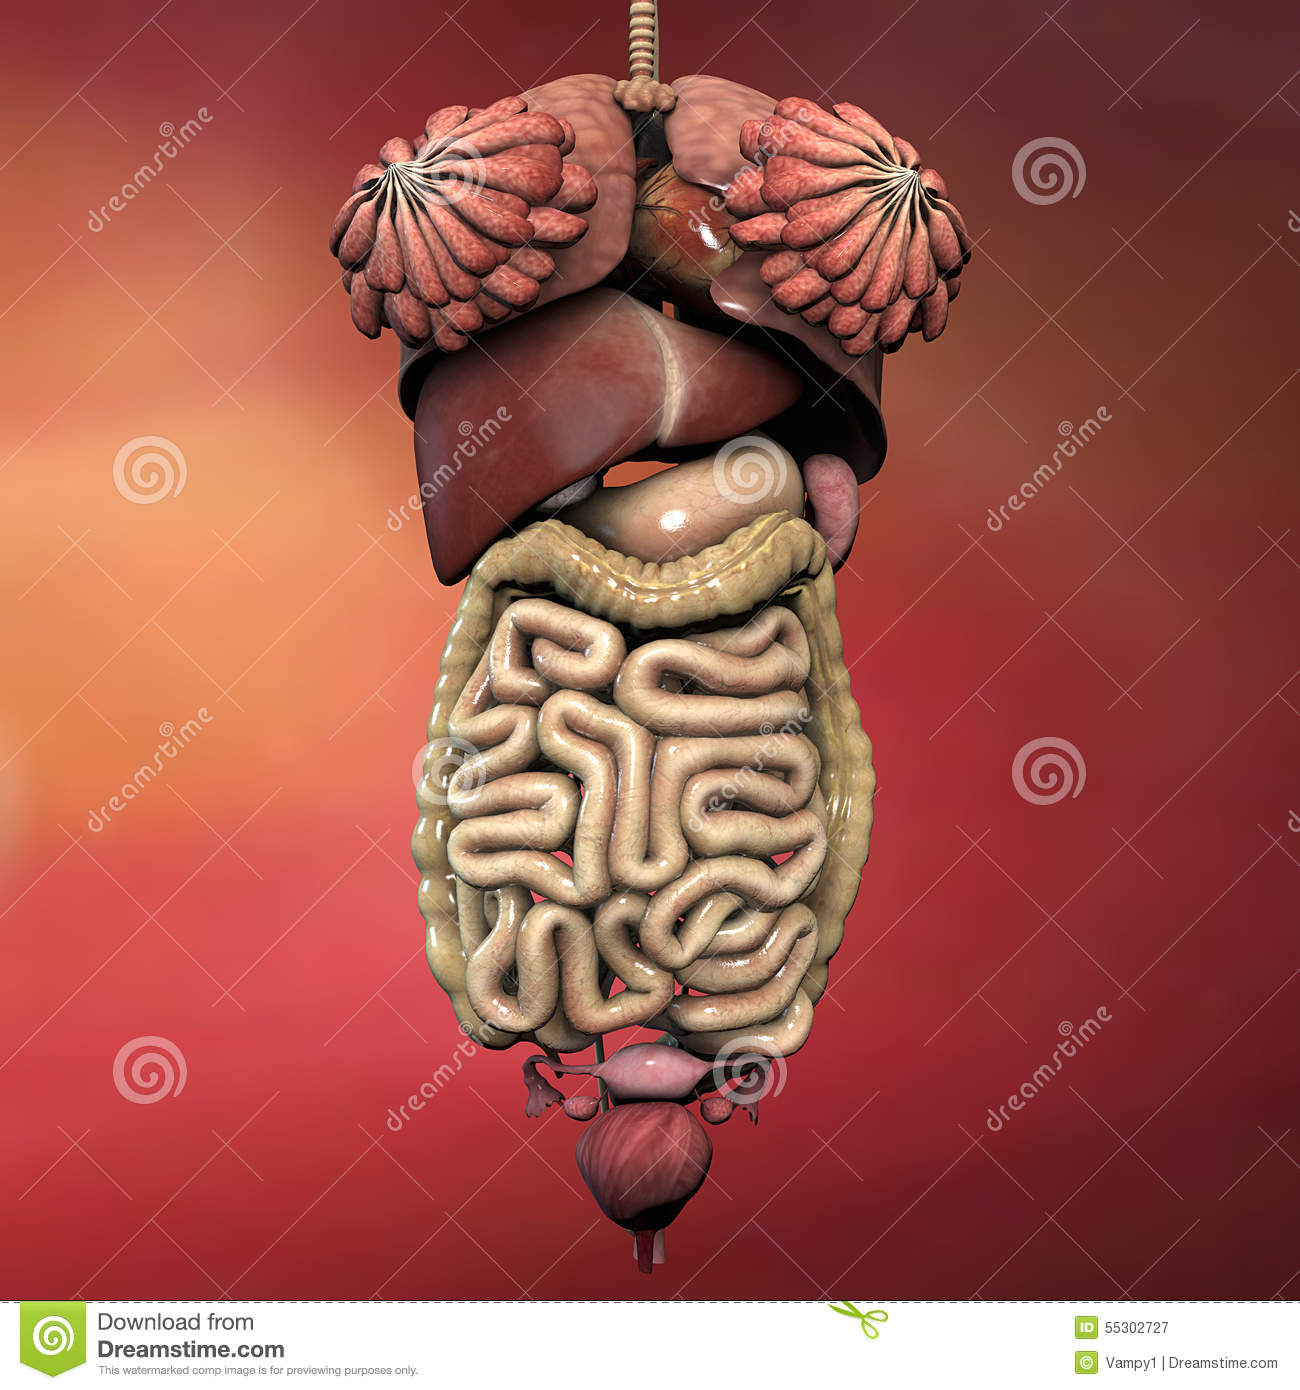 Female human body anatomy stock illustration. Illustration of ...